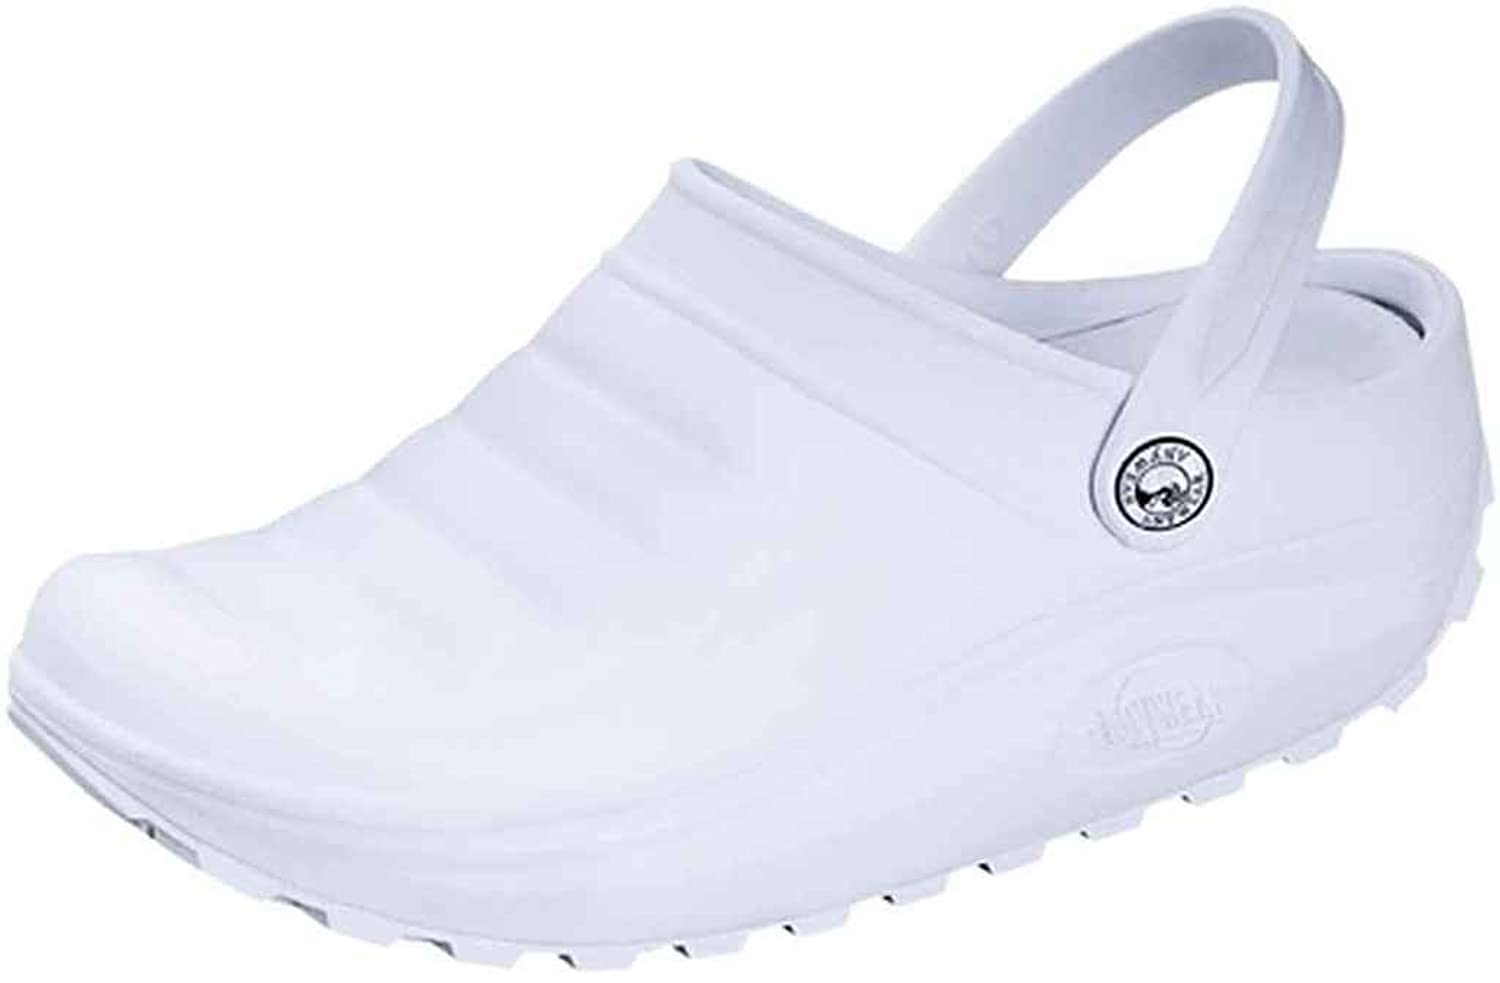 Anywear Injected Point High Lobe Clog - Women's Size 5 M US White